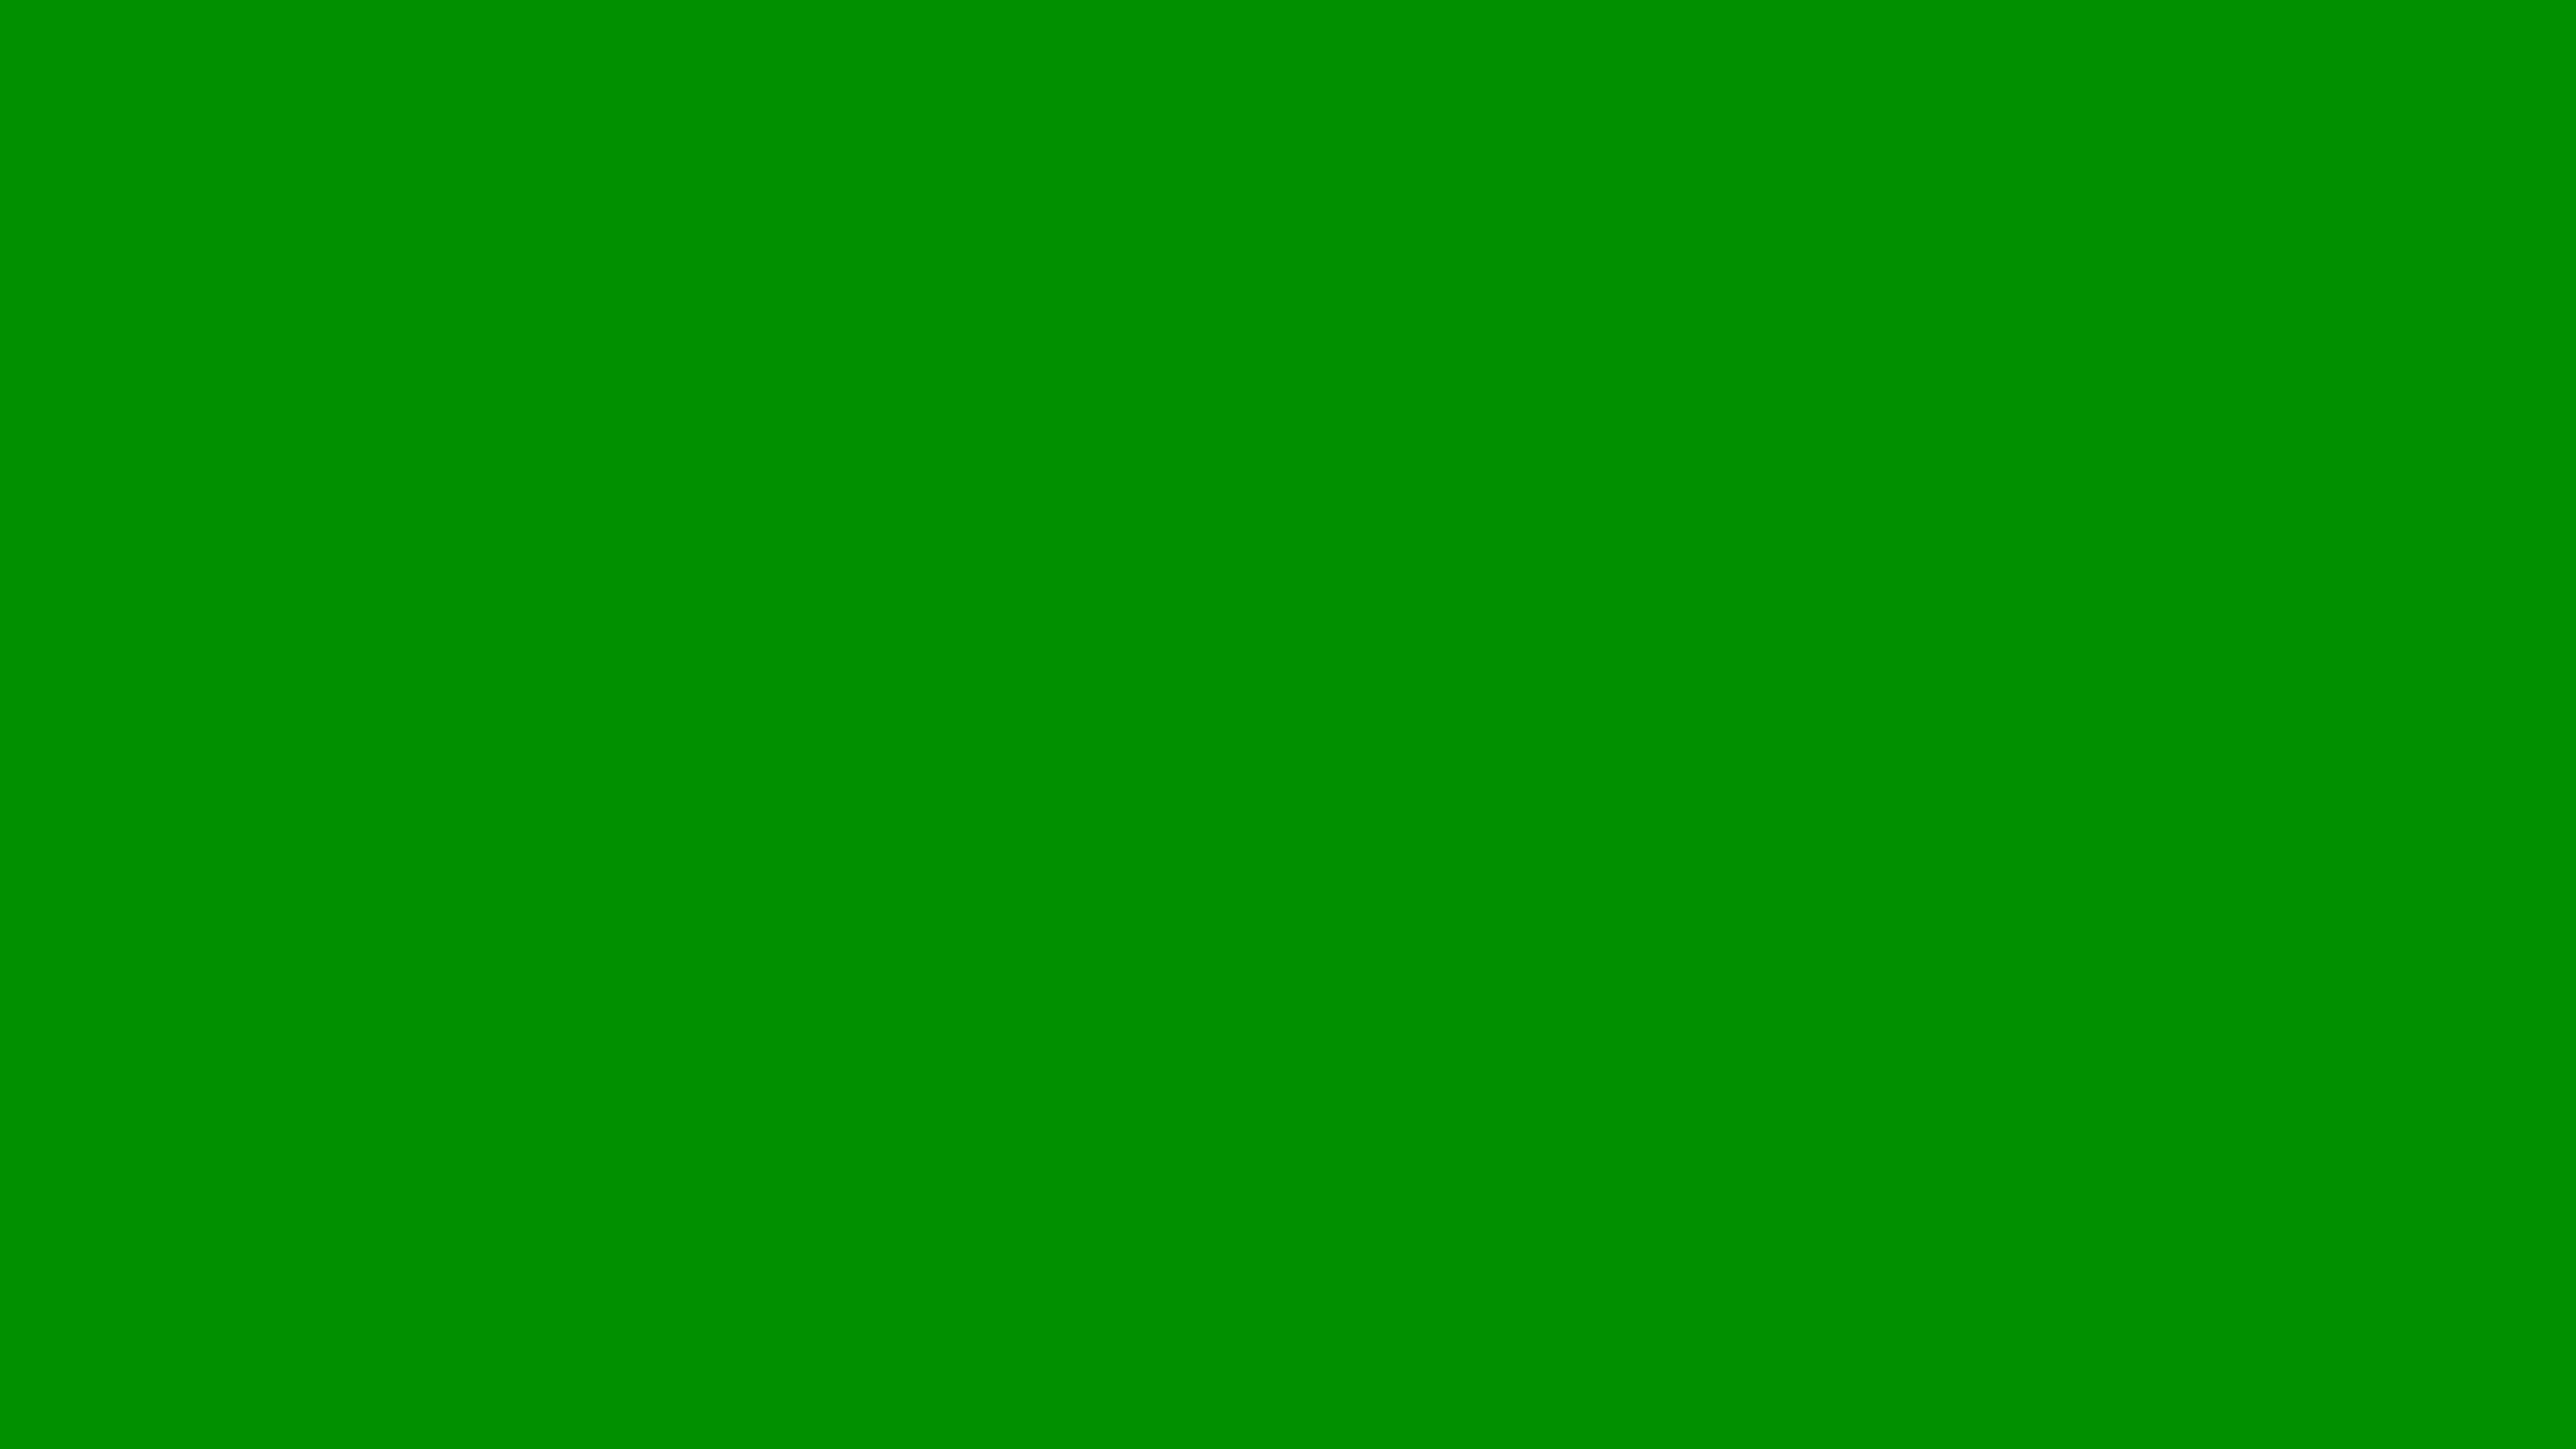 5120x2880 Islamic Green Solid Color Background